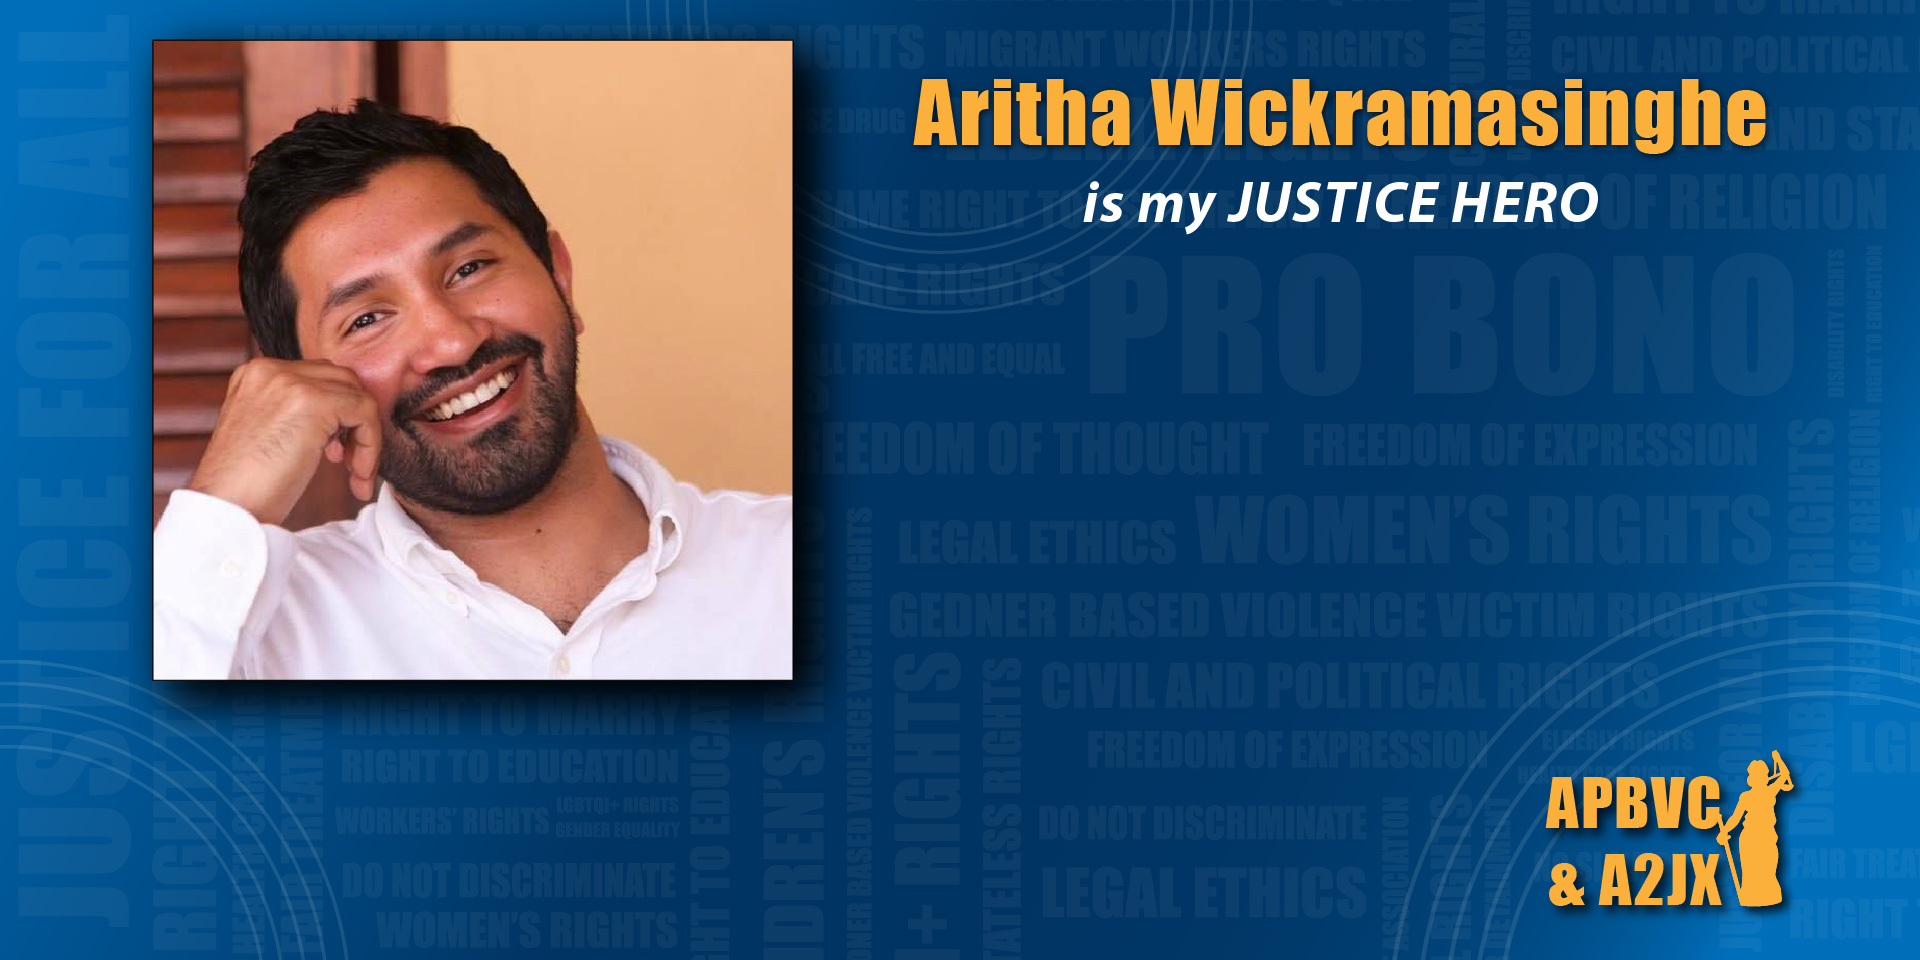 Aritha Wickramasinghe